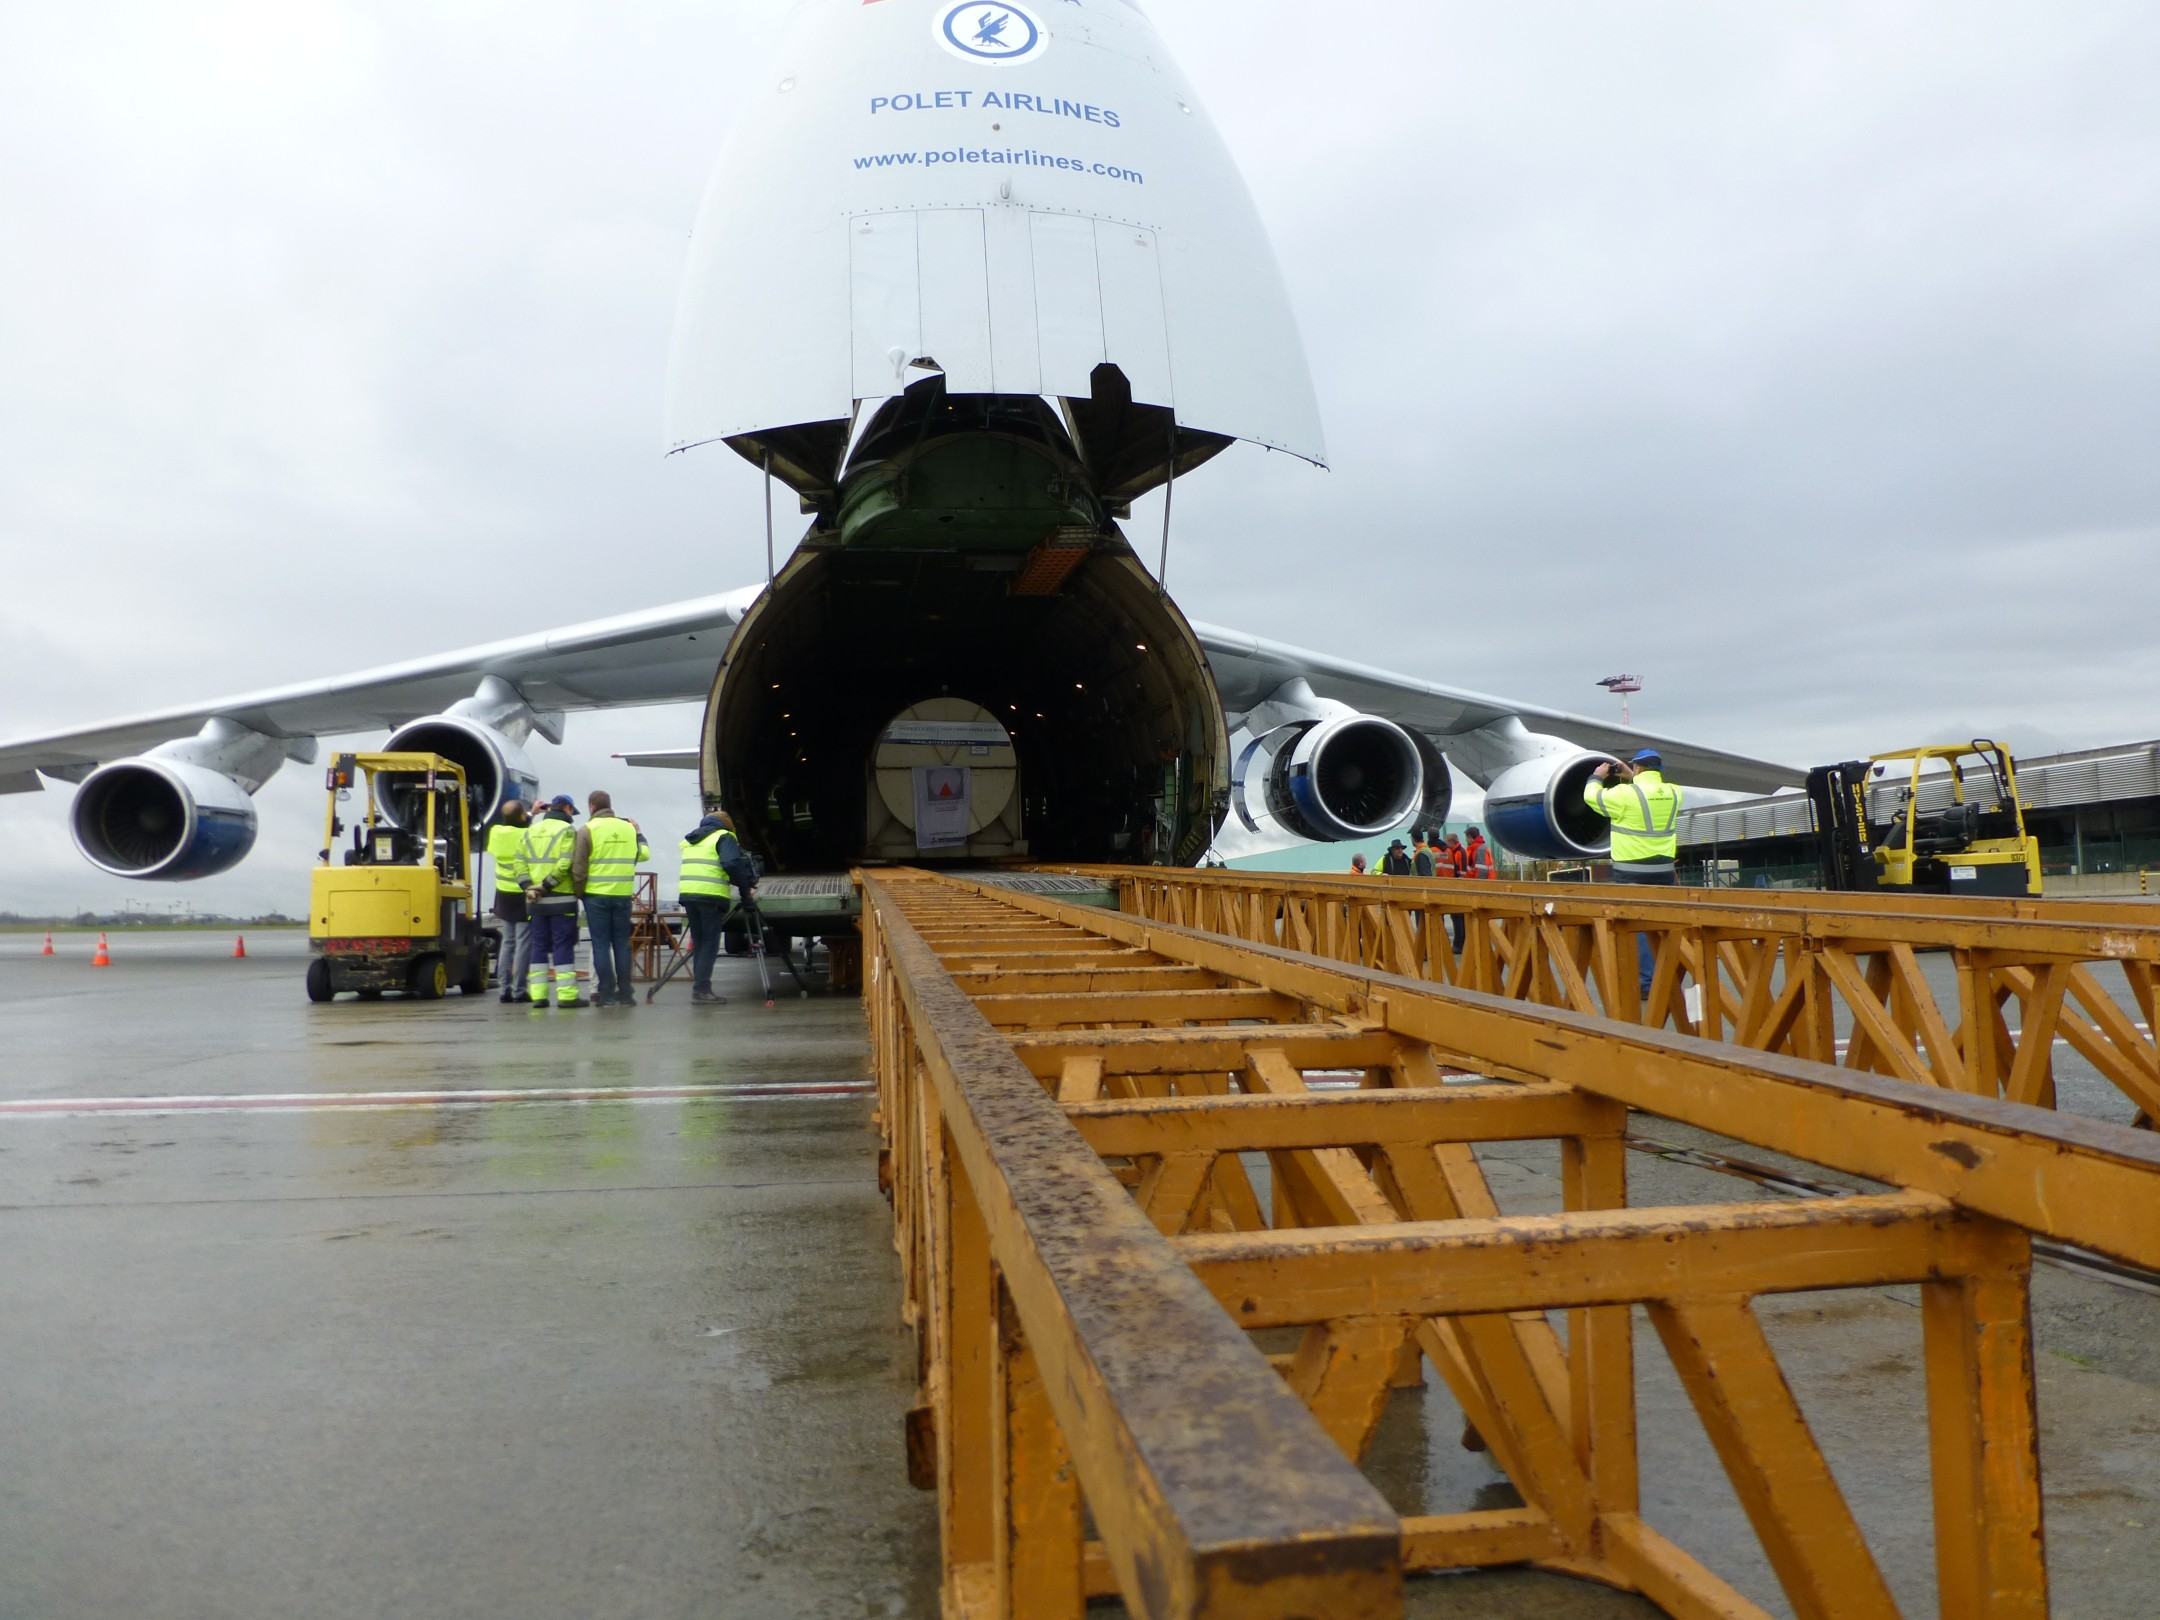 antonov-turbogenerator-maintenance-partners-033